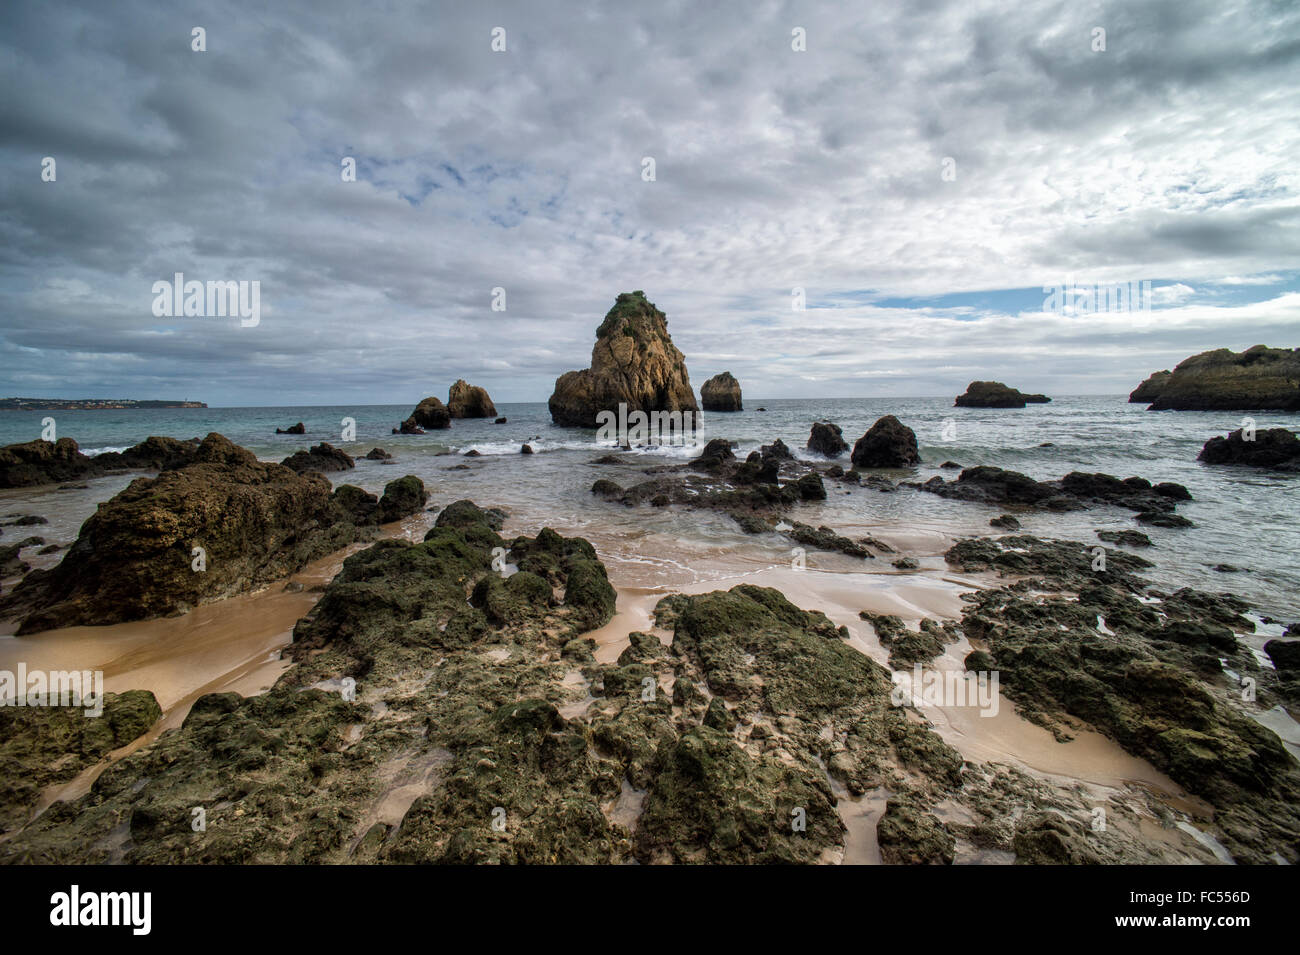 Rocky shoreline at Praia do Vau in the Algarve Portugal - Stock Image